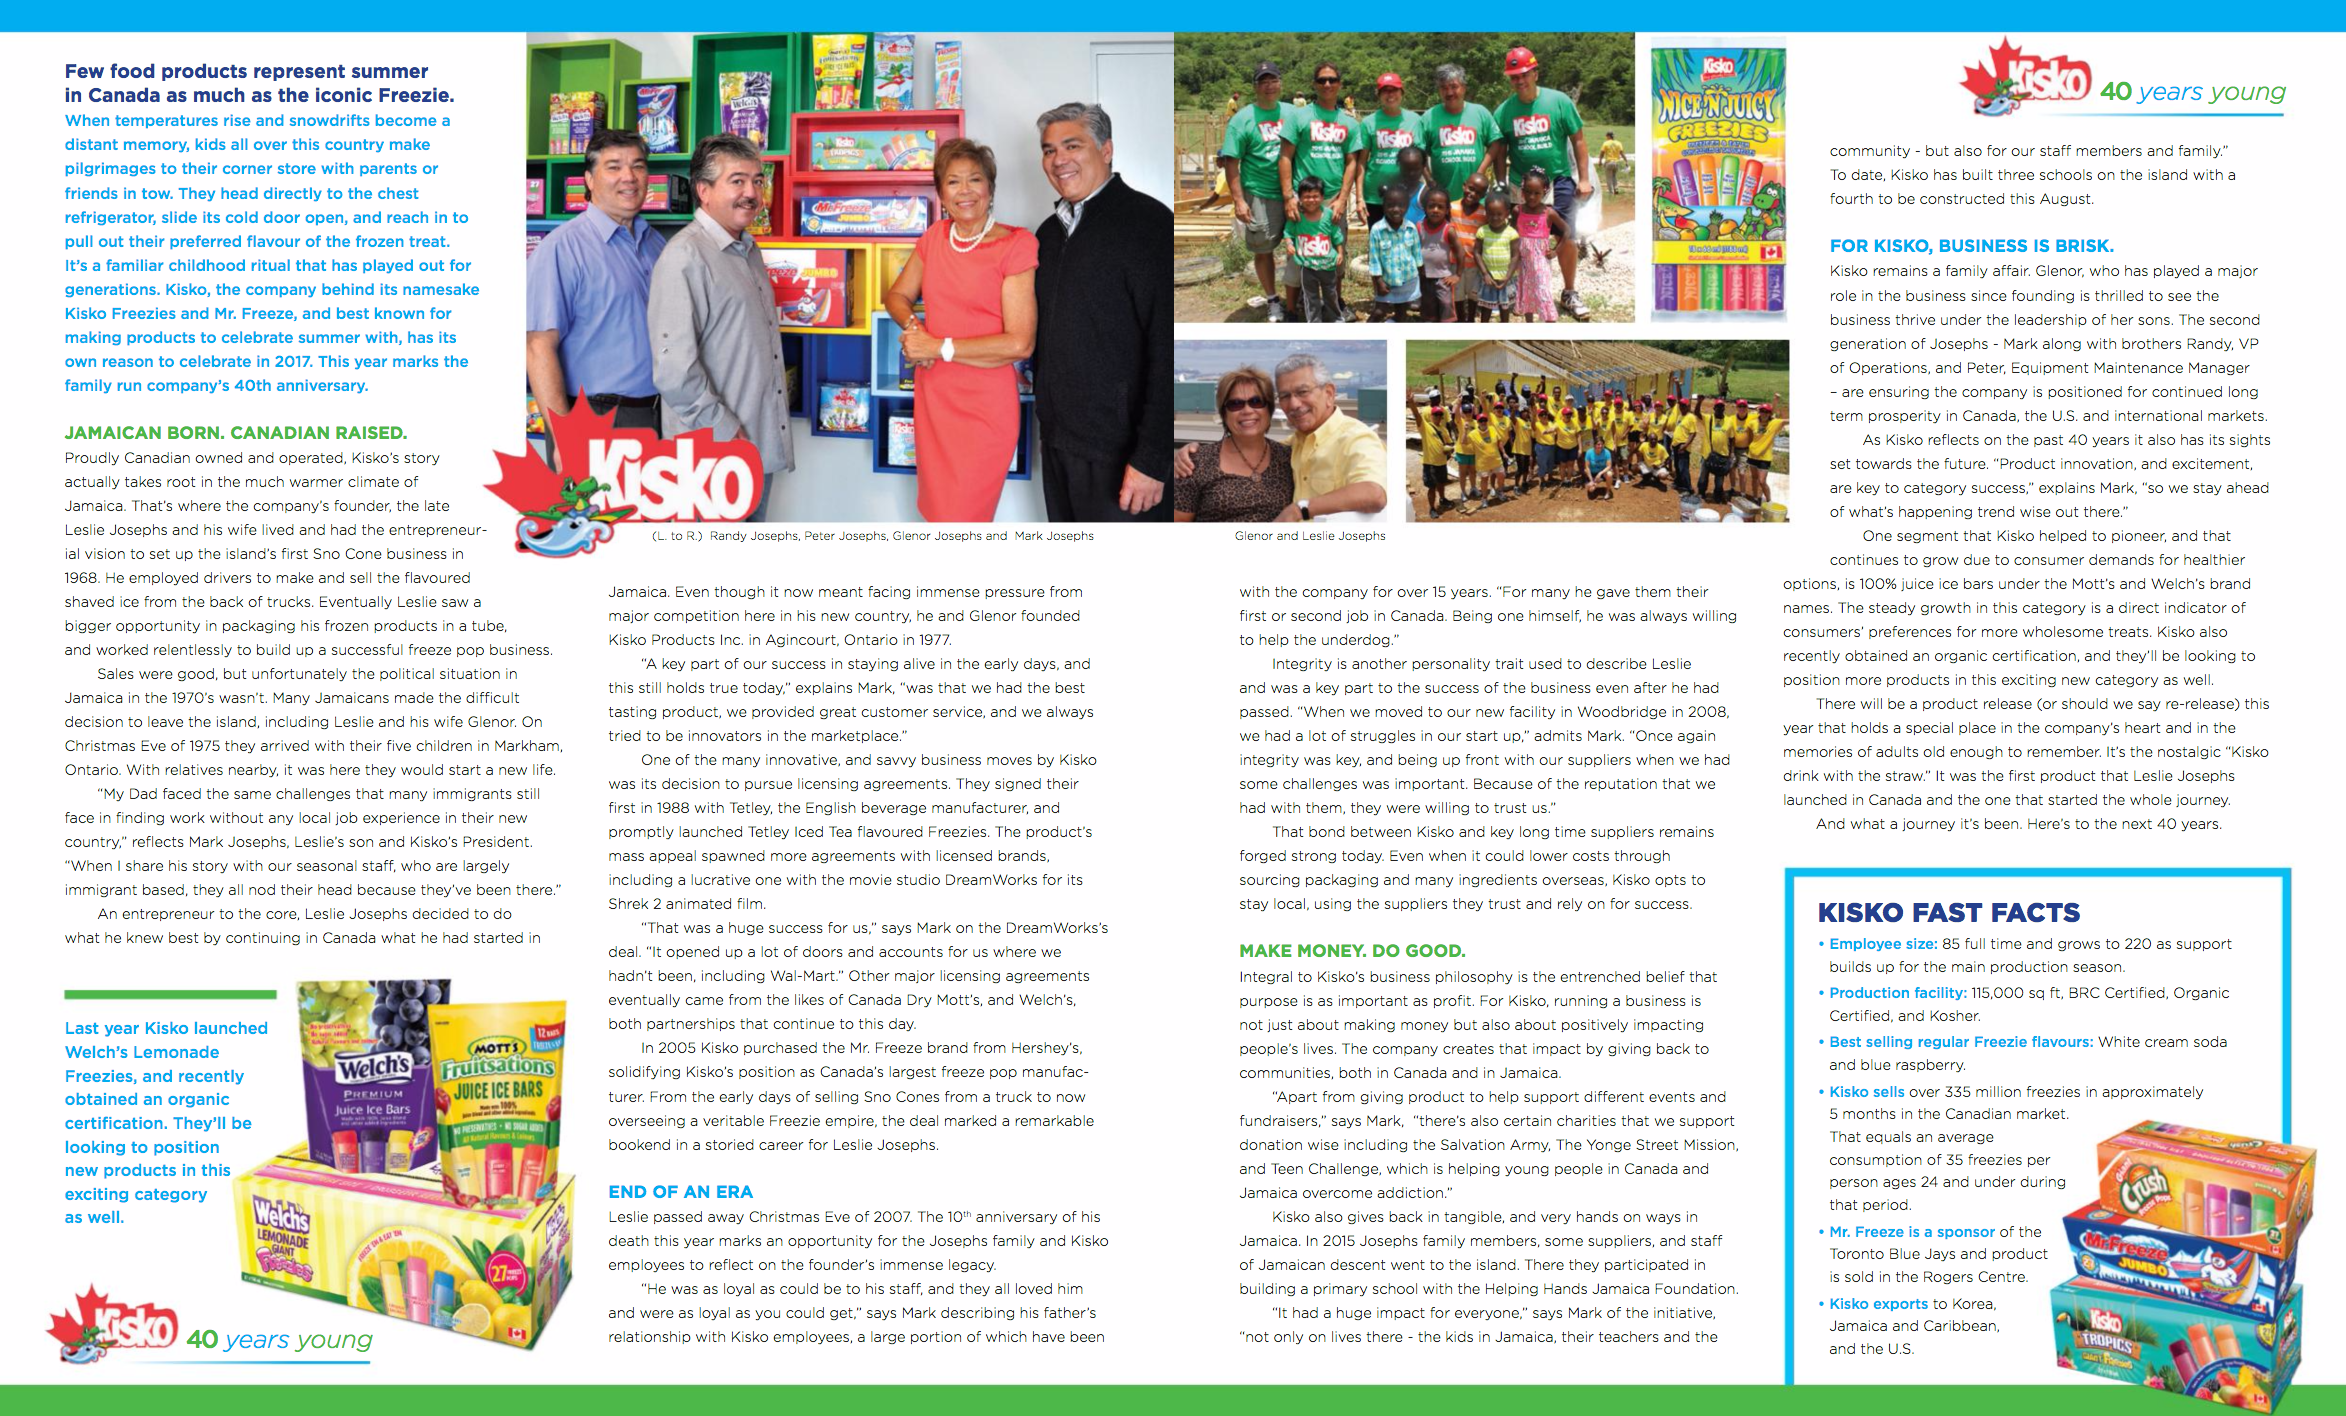 Article in Grocery Magazine - click on READ MORE button to read full article